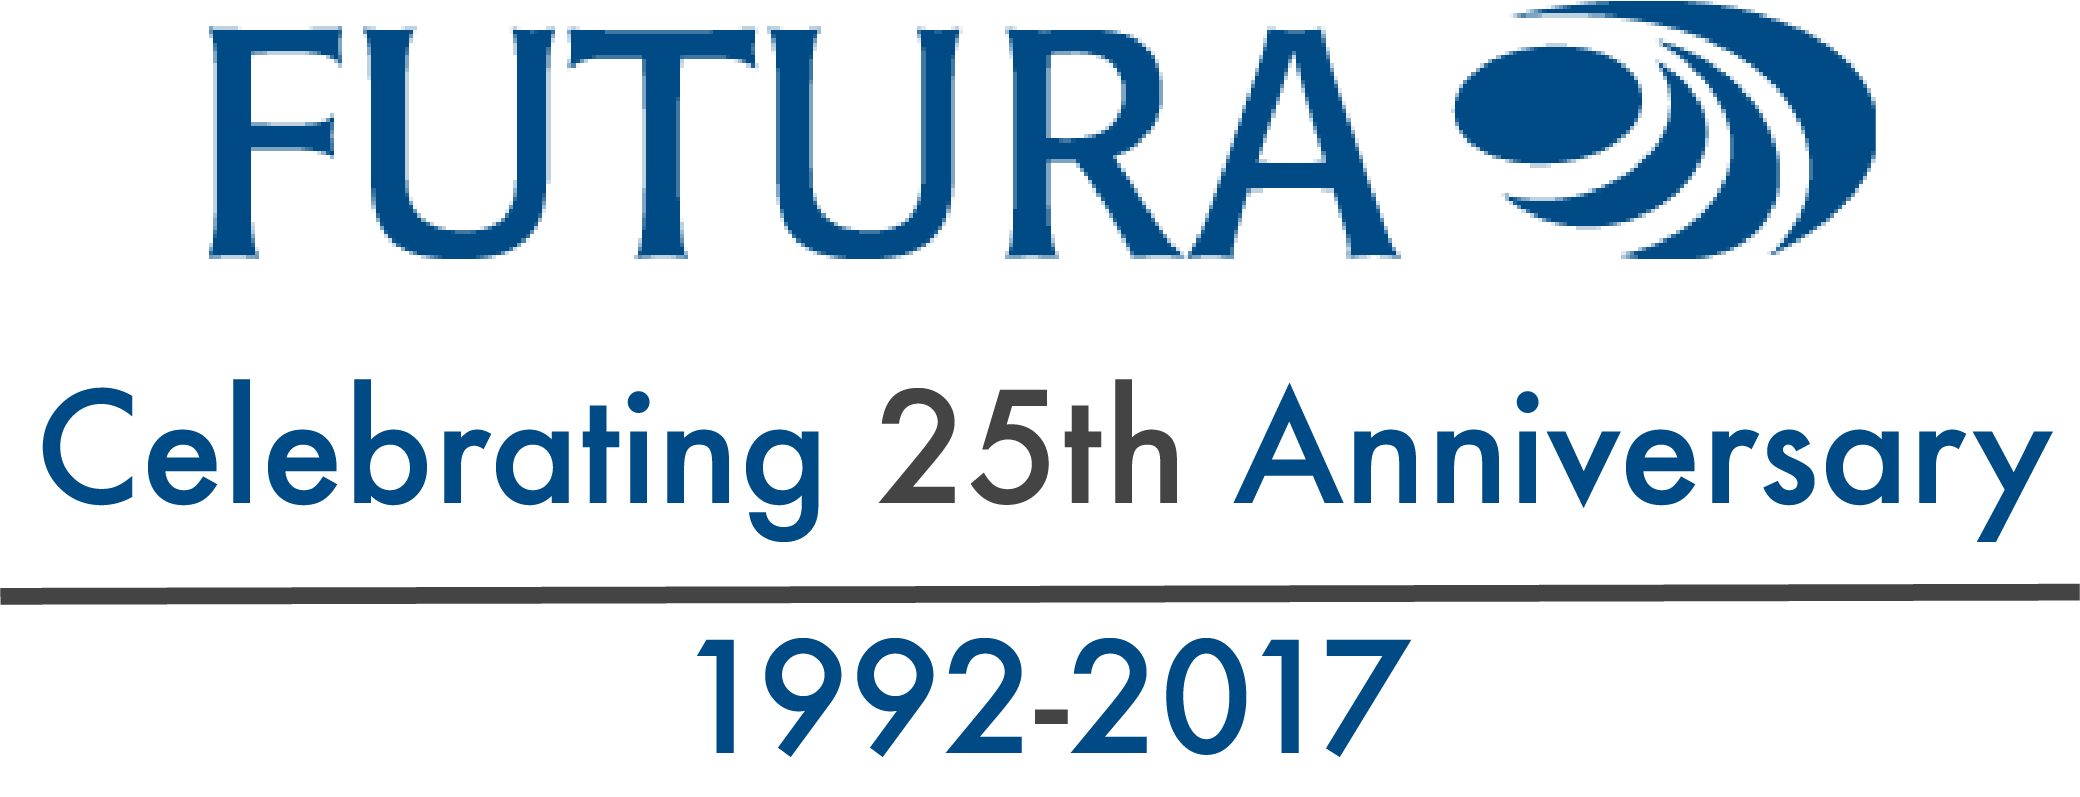 Futura Celebrating 25th Anniversary